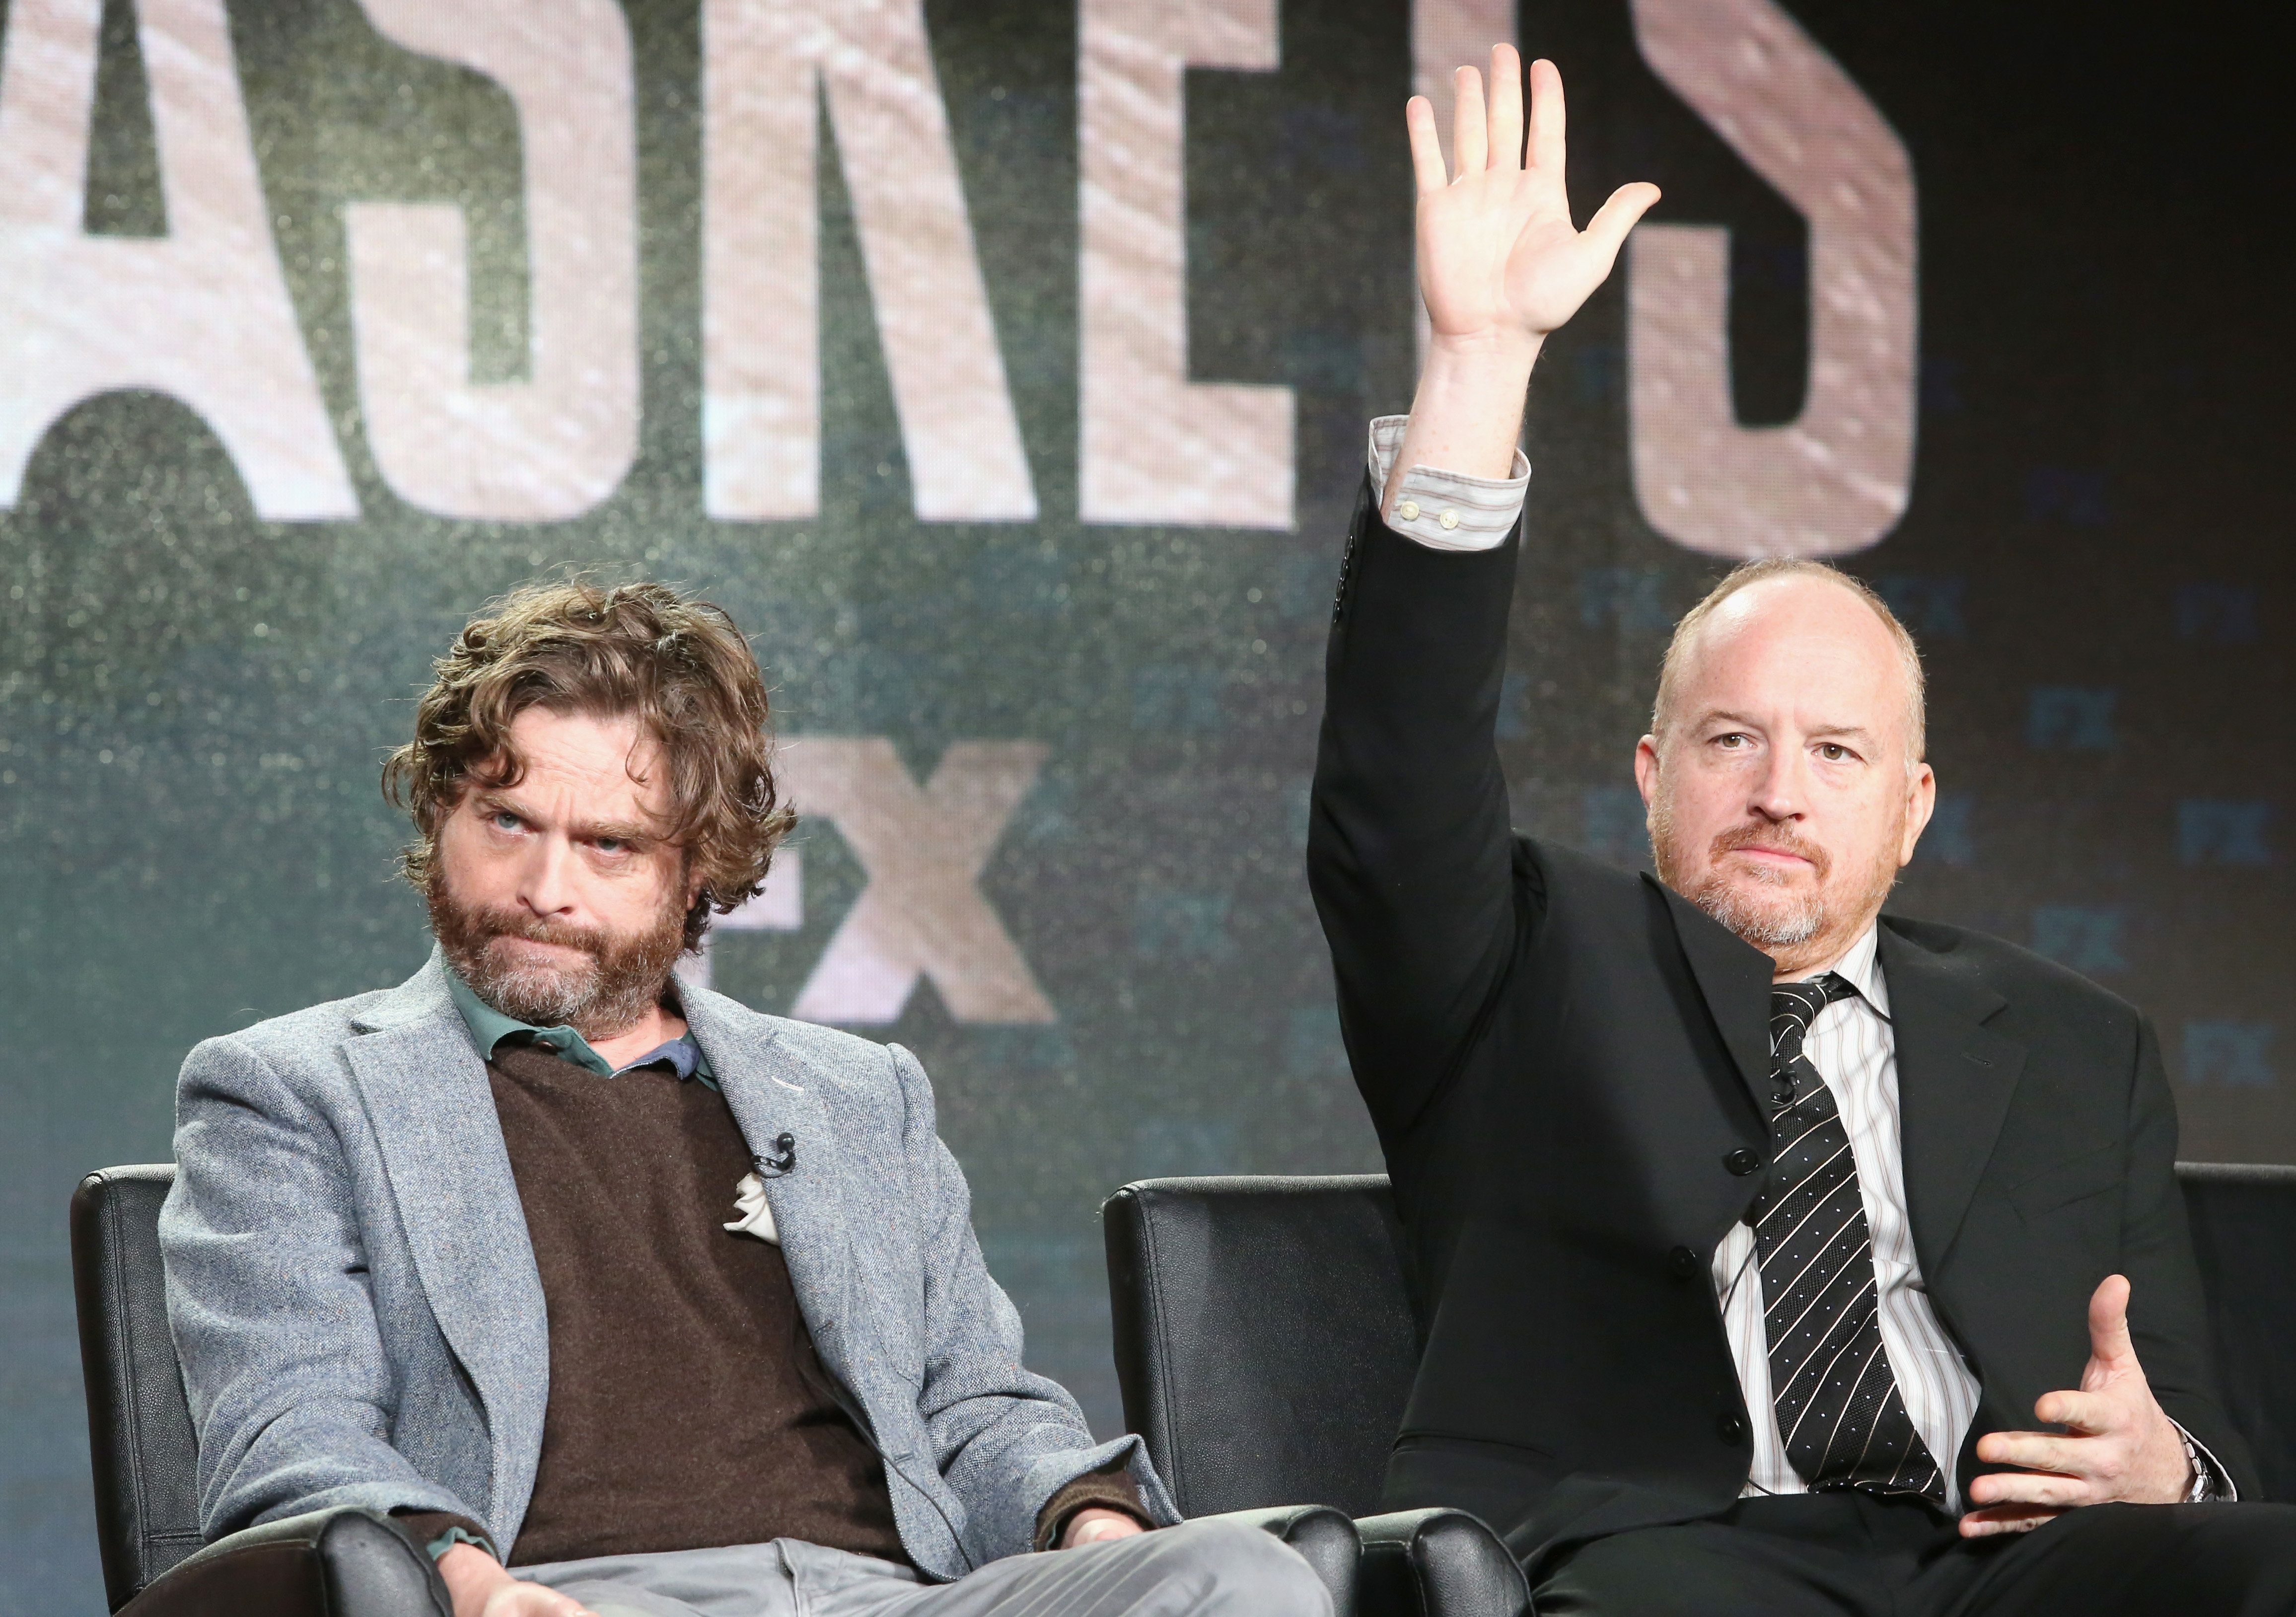 PASADENA, CA - JANUARY 16:  (L-R) Co-Creator/Executive Producer/Actor Zach Galifianakis and Co-Creator/Executive Producer Louis C.K. speak onstage during 'Baskets' panel discussion at the FX portion of the 2015 Winter TCA Tour at the Langham Huntington Hotel on January 16, 2016 in Pasadena, California.  (Photo by Frederick M. Brown/Getty Images)